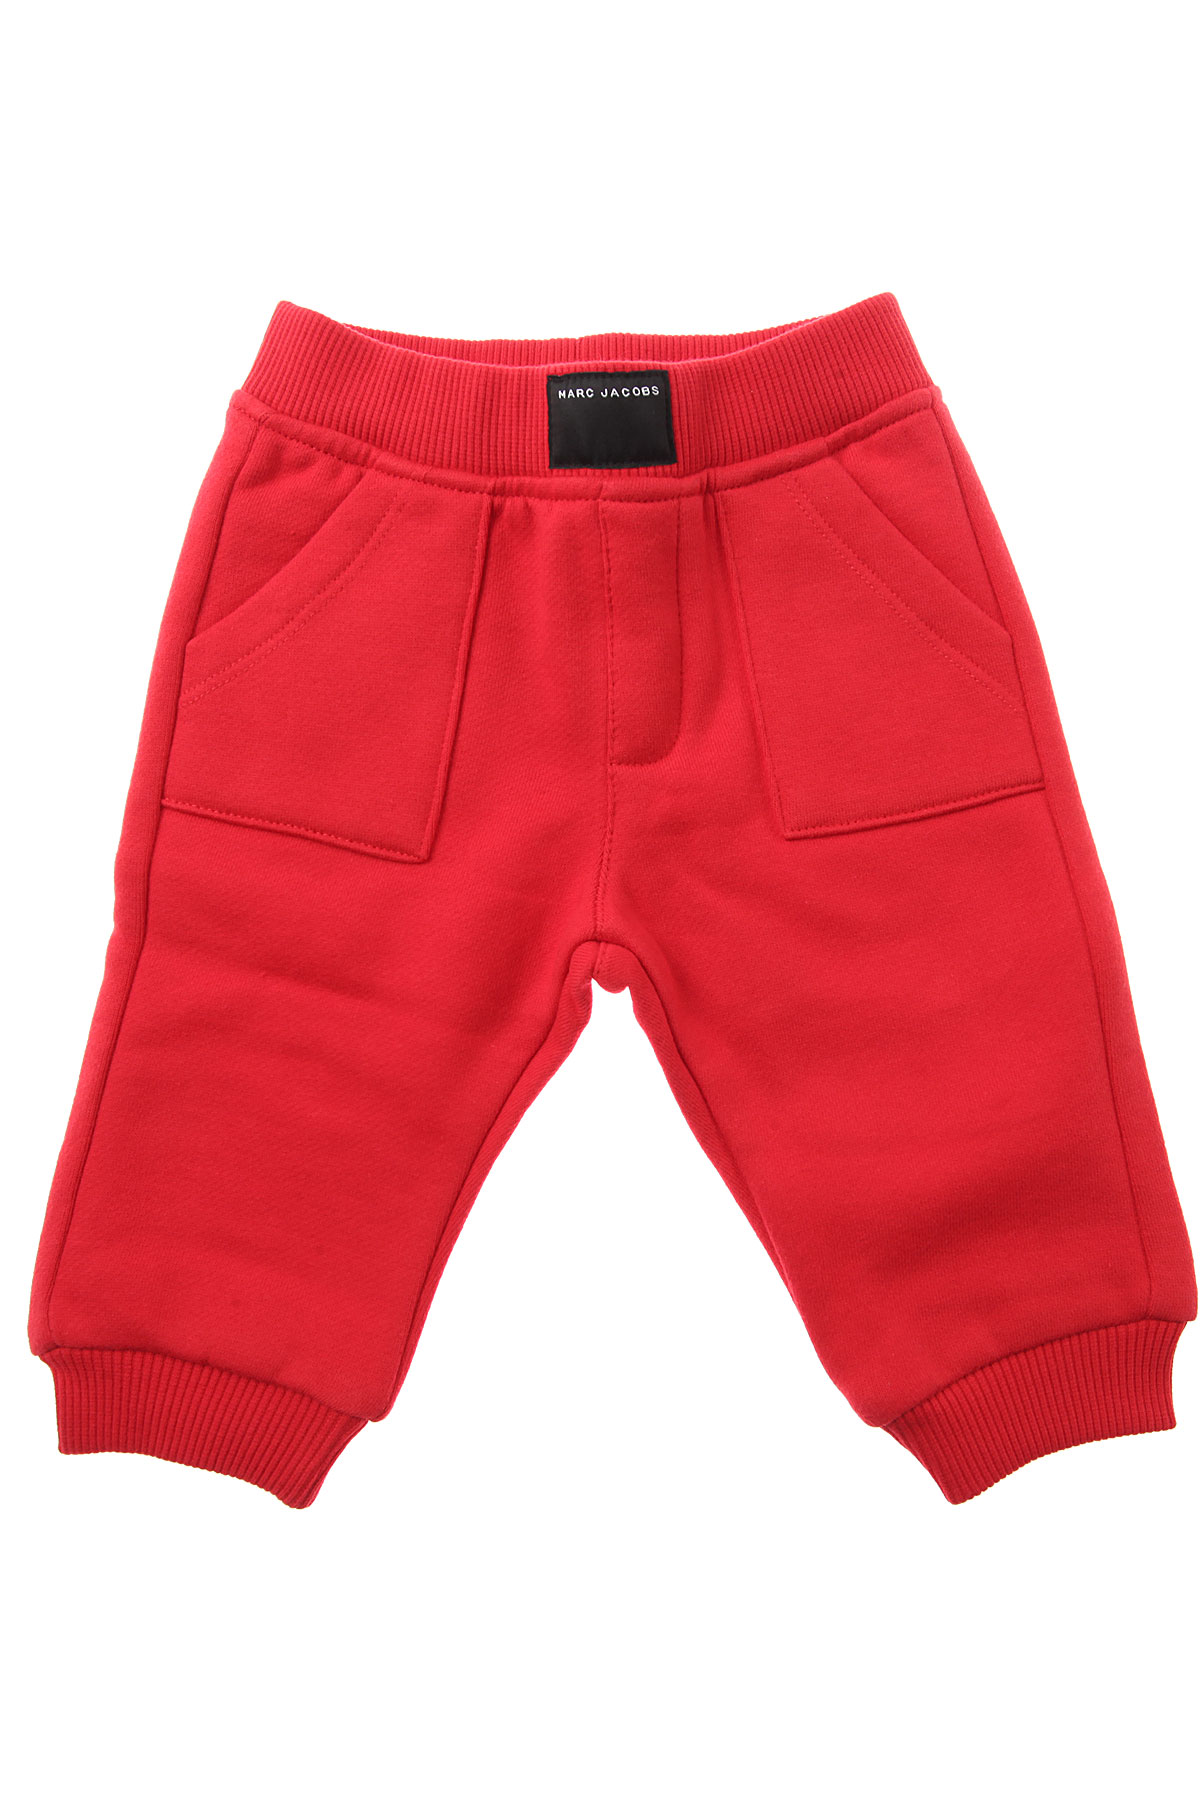 Image of Marc Jacobs Baby Pants for Boys, Red, Cotton, 2017, 12M 18M 2Y 3Y 6M 9M